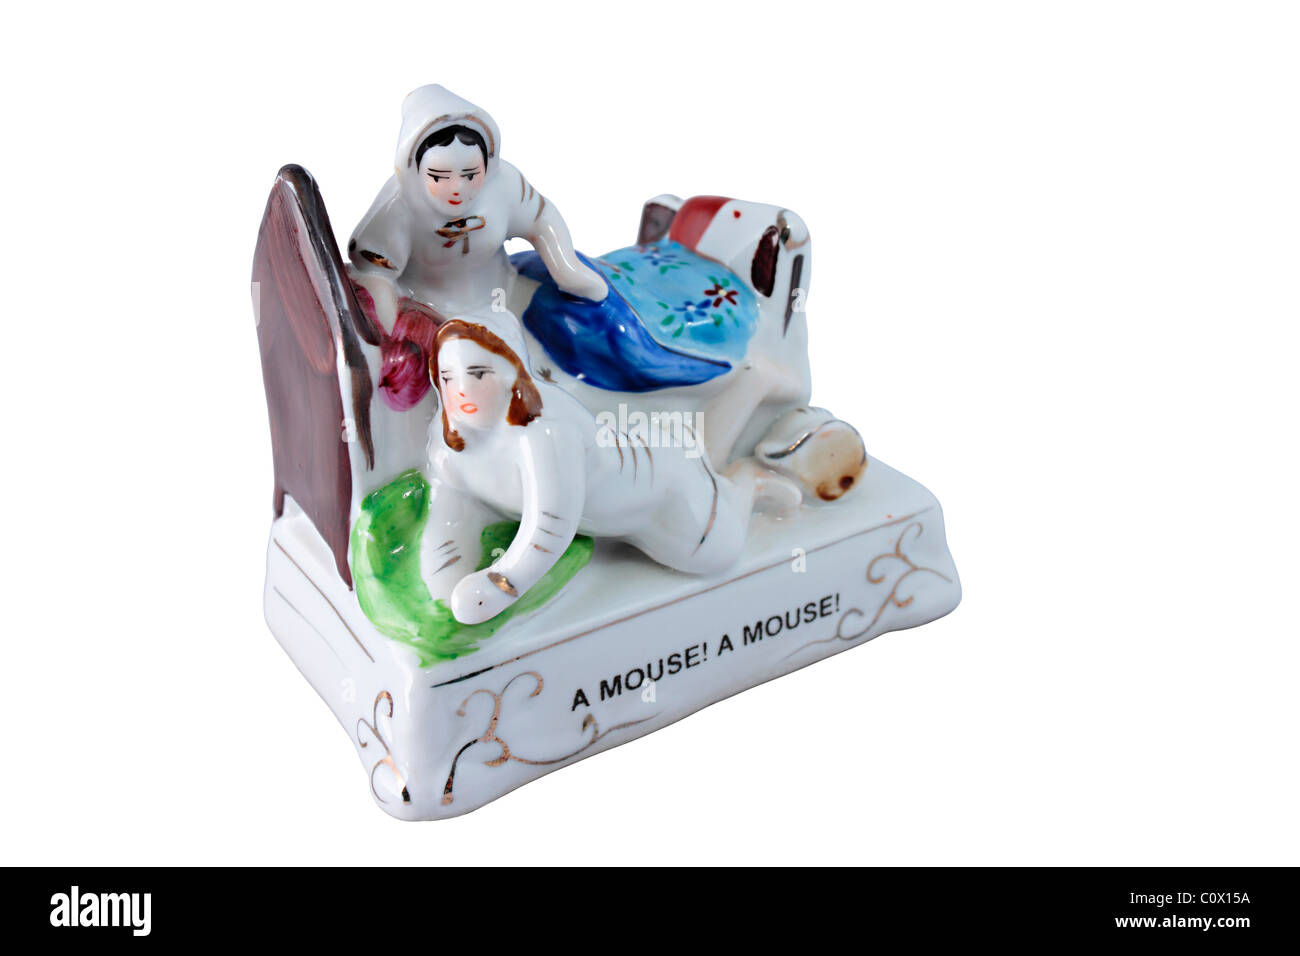 Fairings Ceramic Ornament 'A Mouse A Mouse' - Stock Image